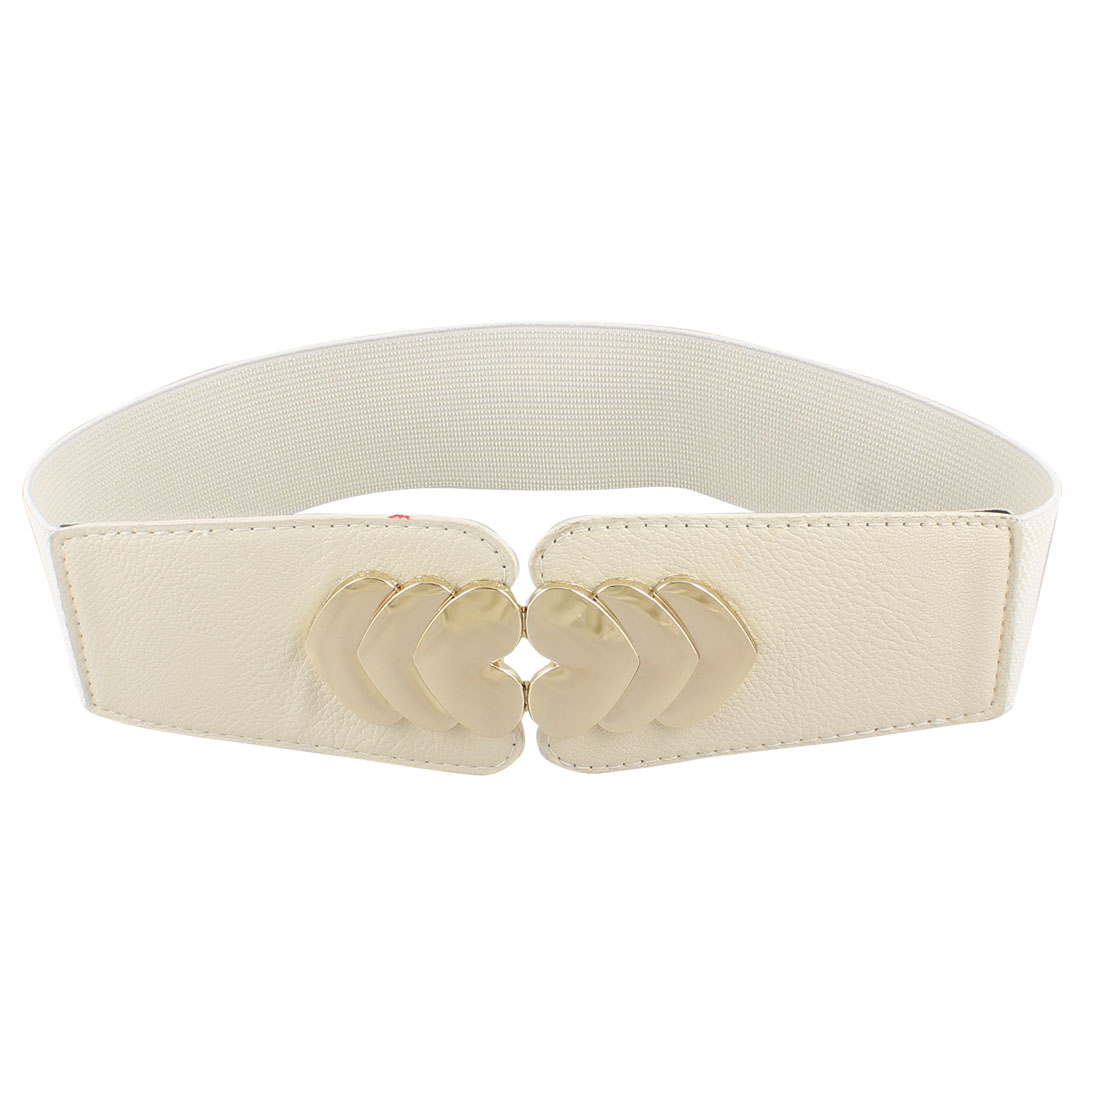 Heart Accent Hook Buckle Stretchy Beige Waist Belt Waistband Corset Band for Lady